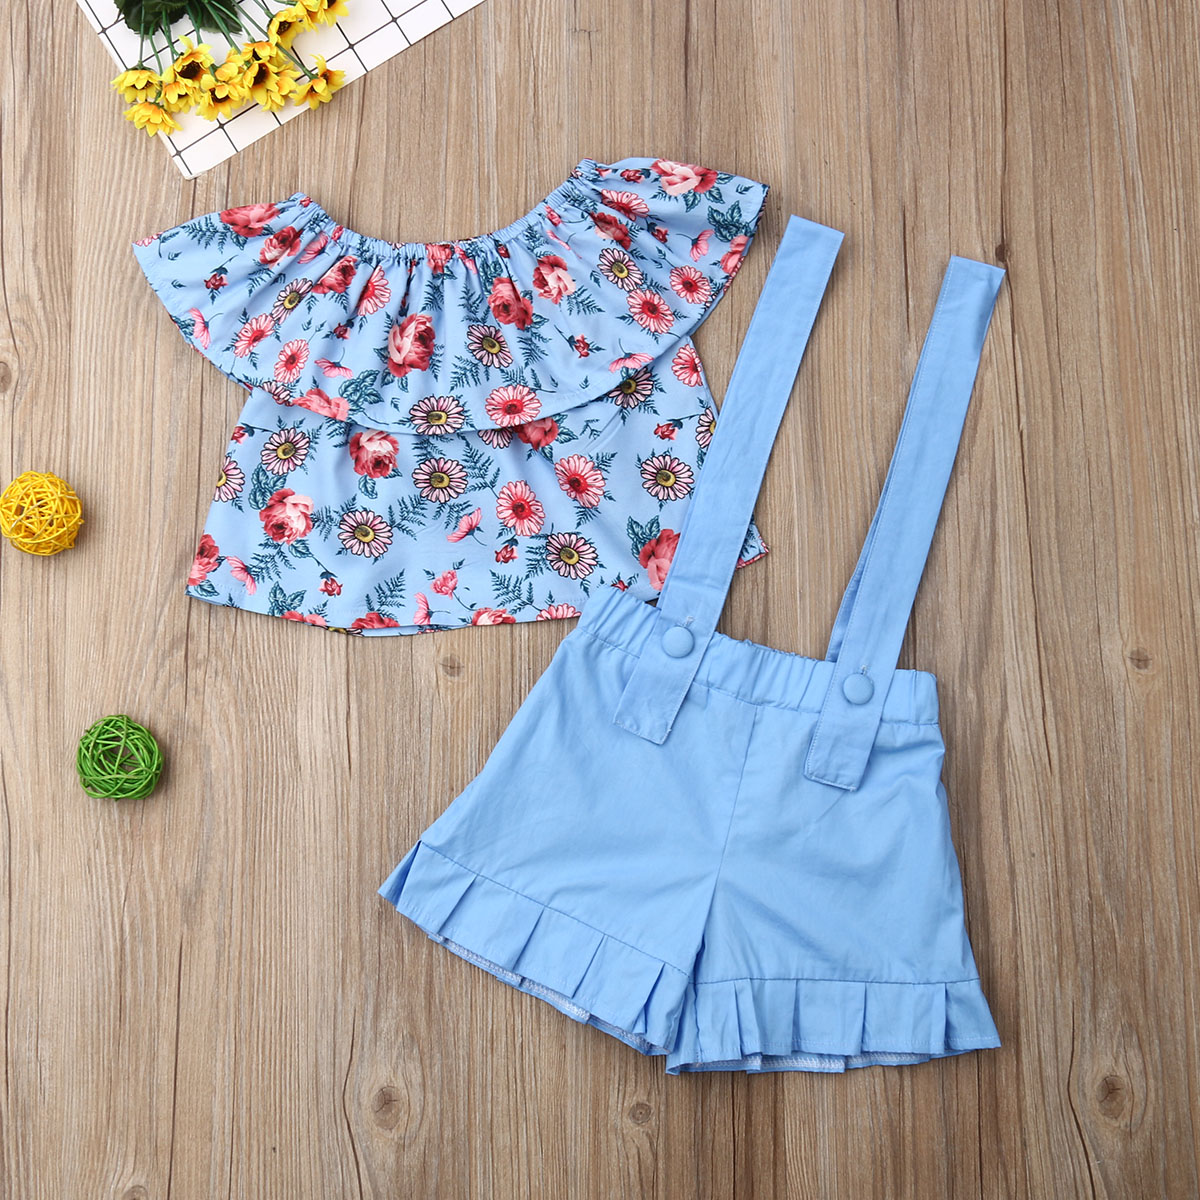 Pudcoco Summer Toddler Baby Girl Clothes Off Shoulder Ruffle Flower Print Tops Overalls Strap Short Pants 2Pcs Outfits Clothes